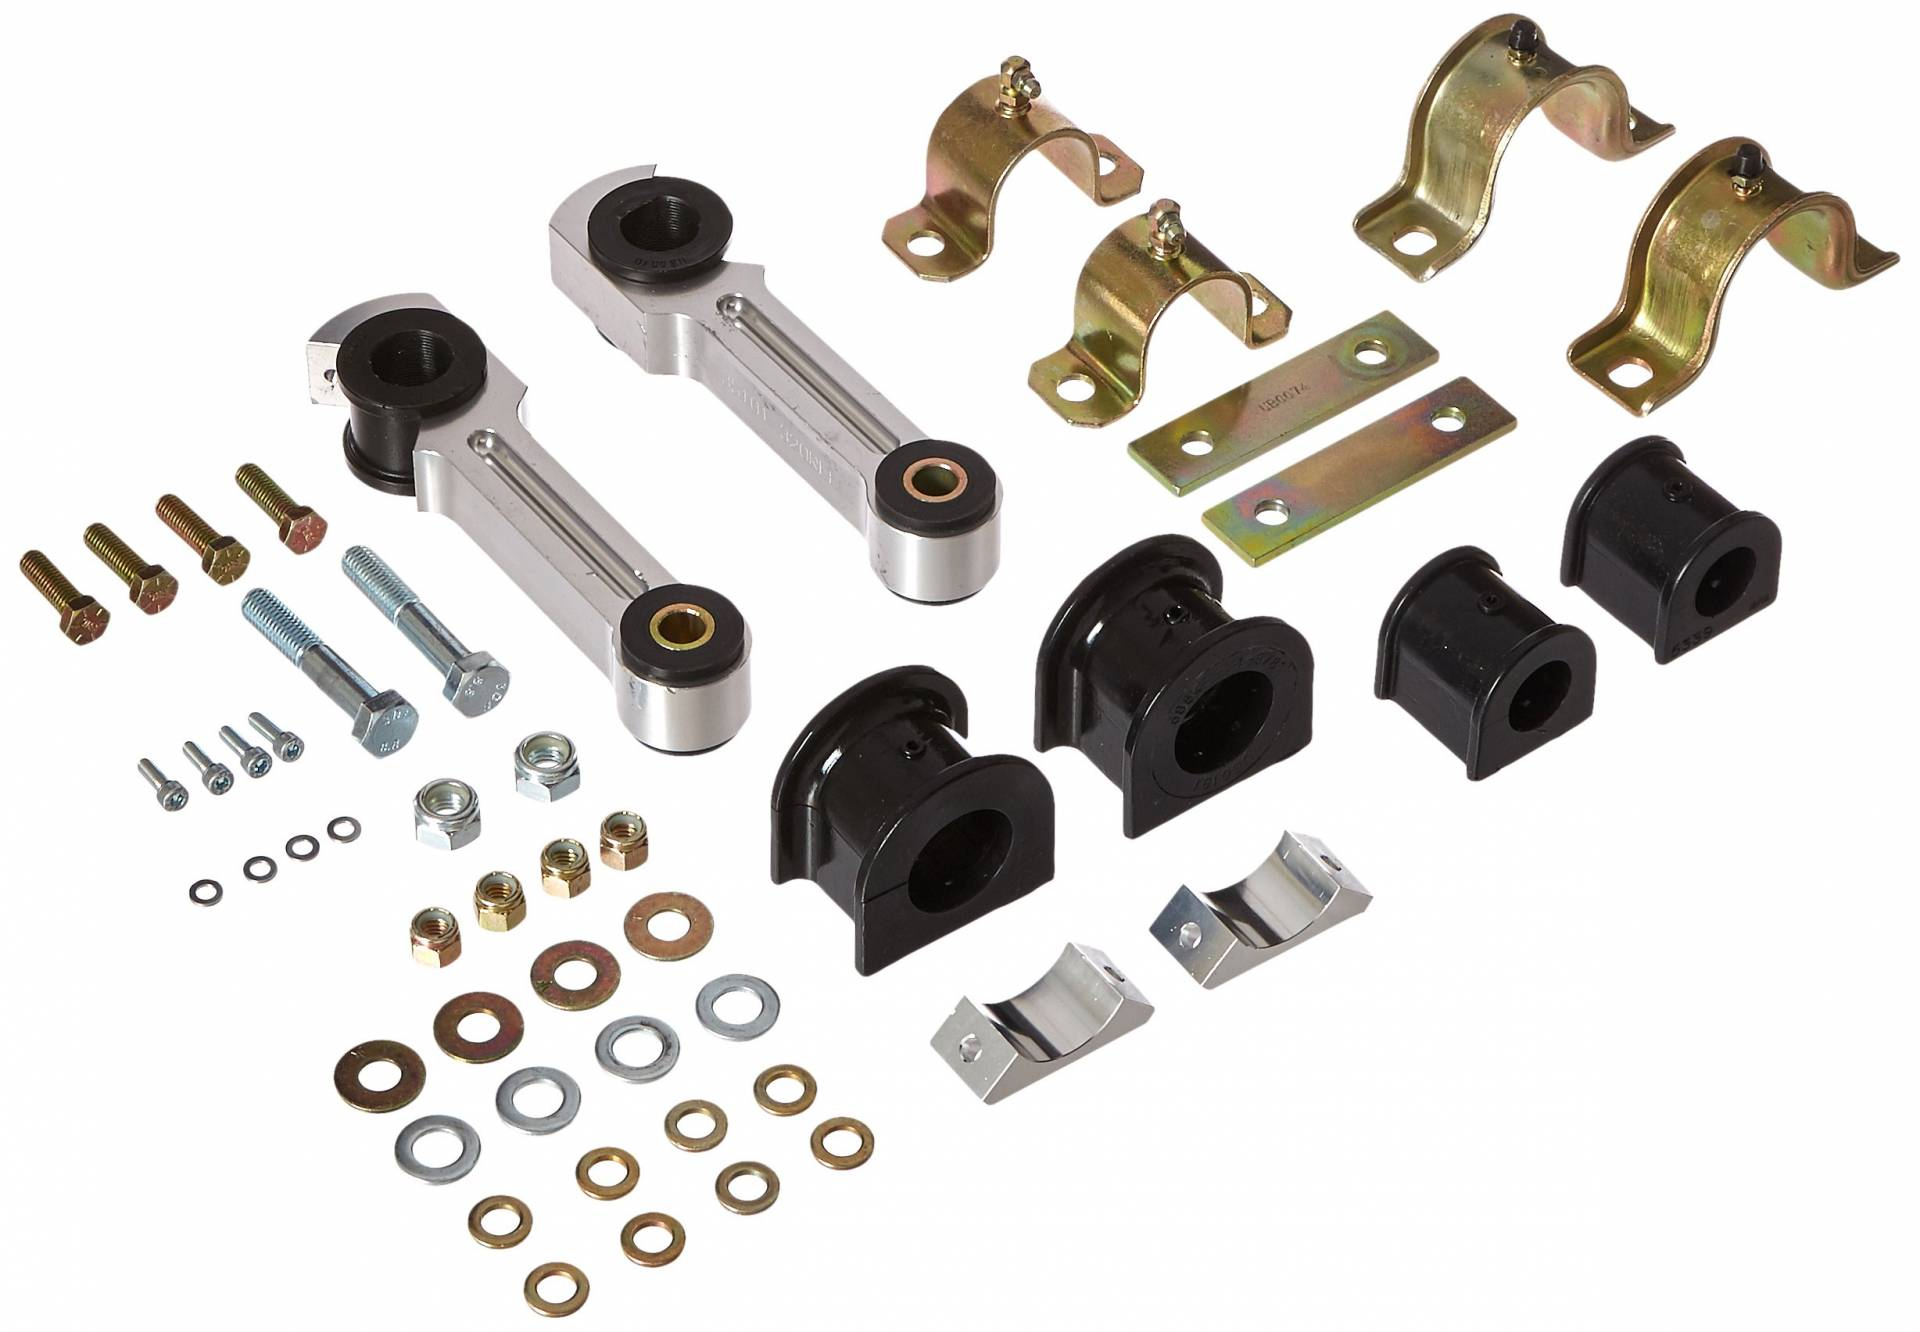 Ford Racing (M-5490-HWB) Komplettes Anti-Überrollbügel-Hardware-Kit von Ford